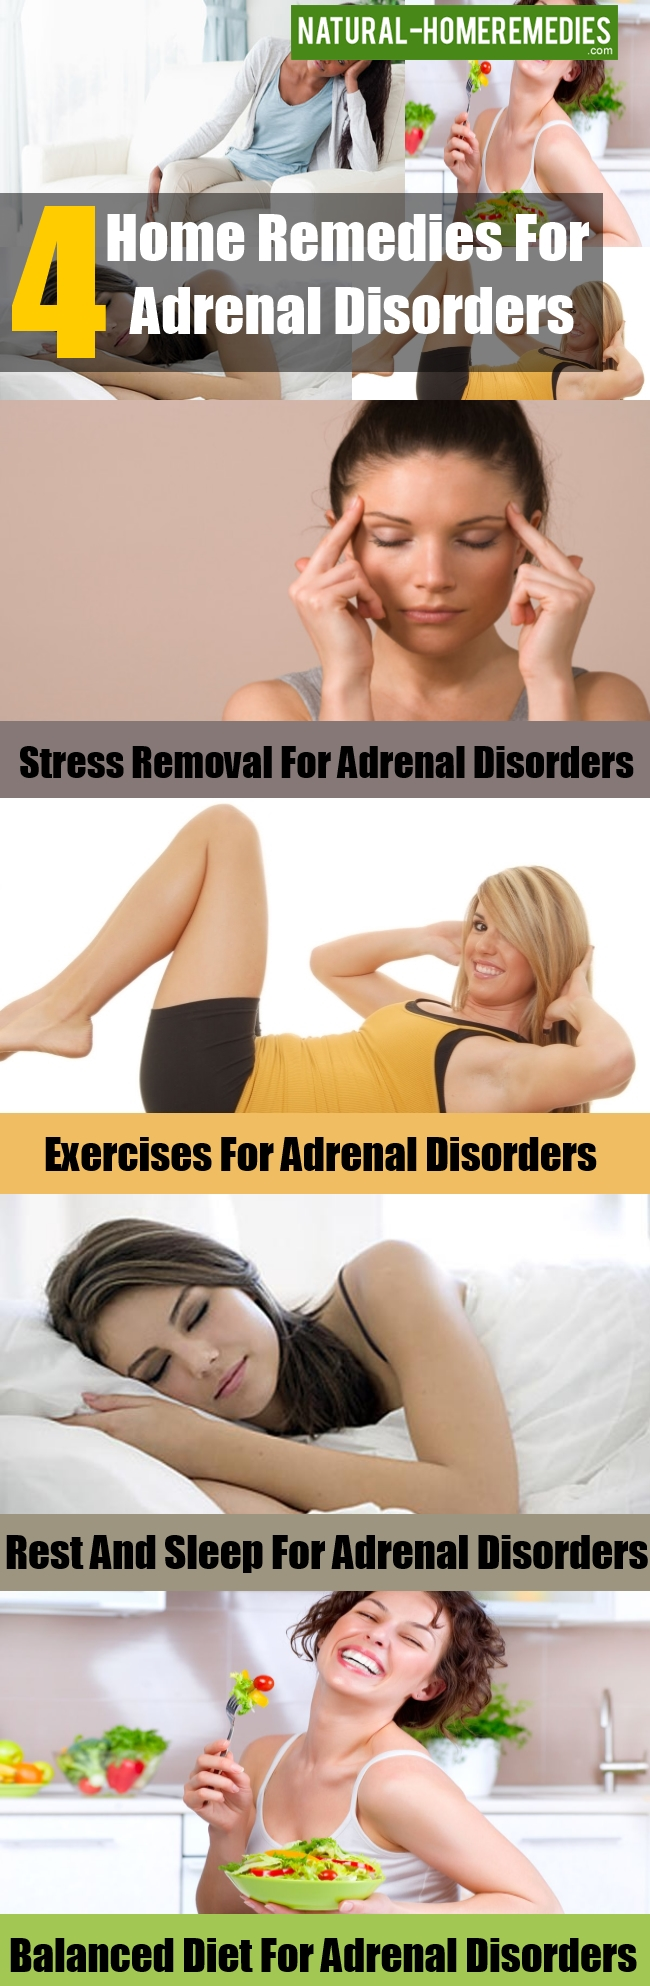 Home Remedies for Adrenal Disorders